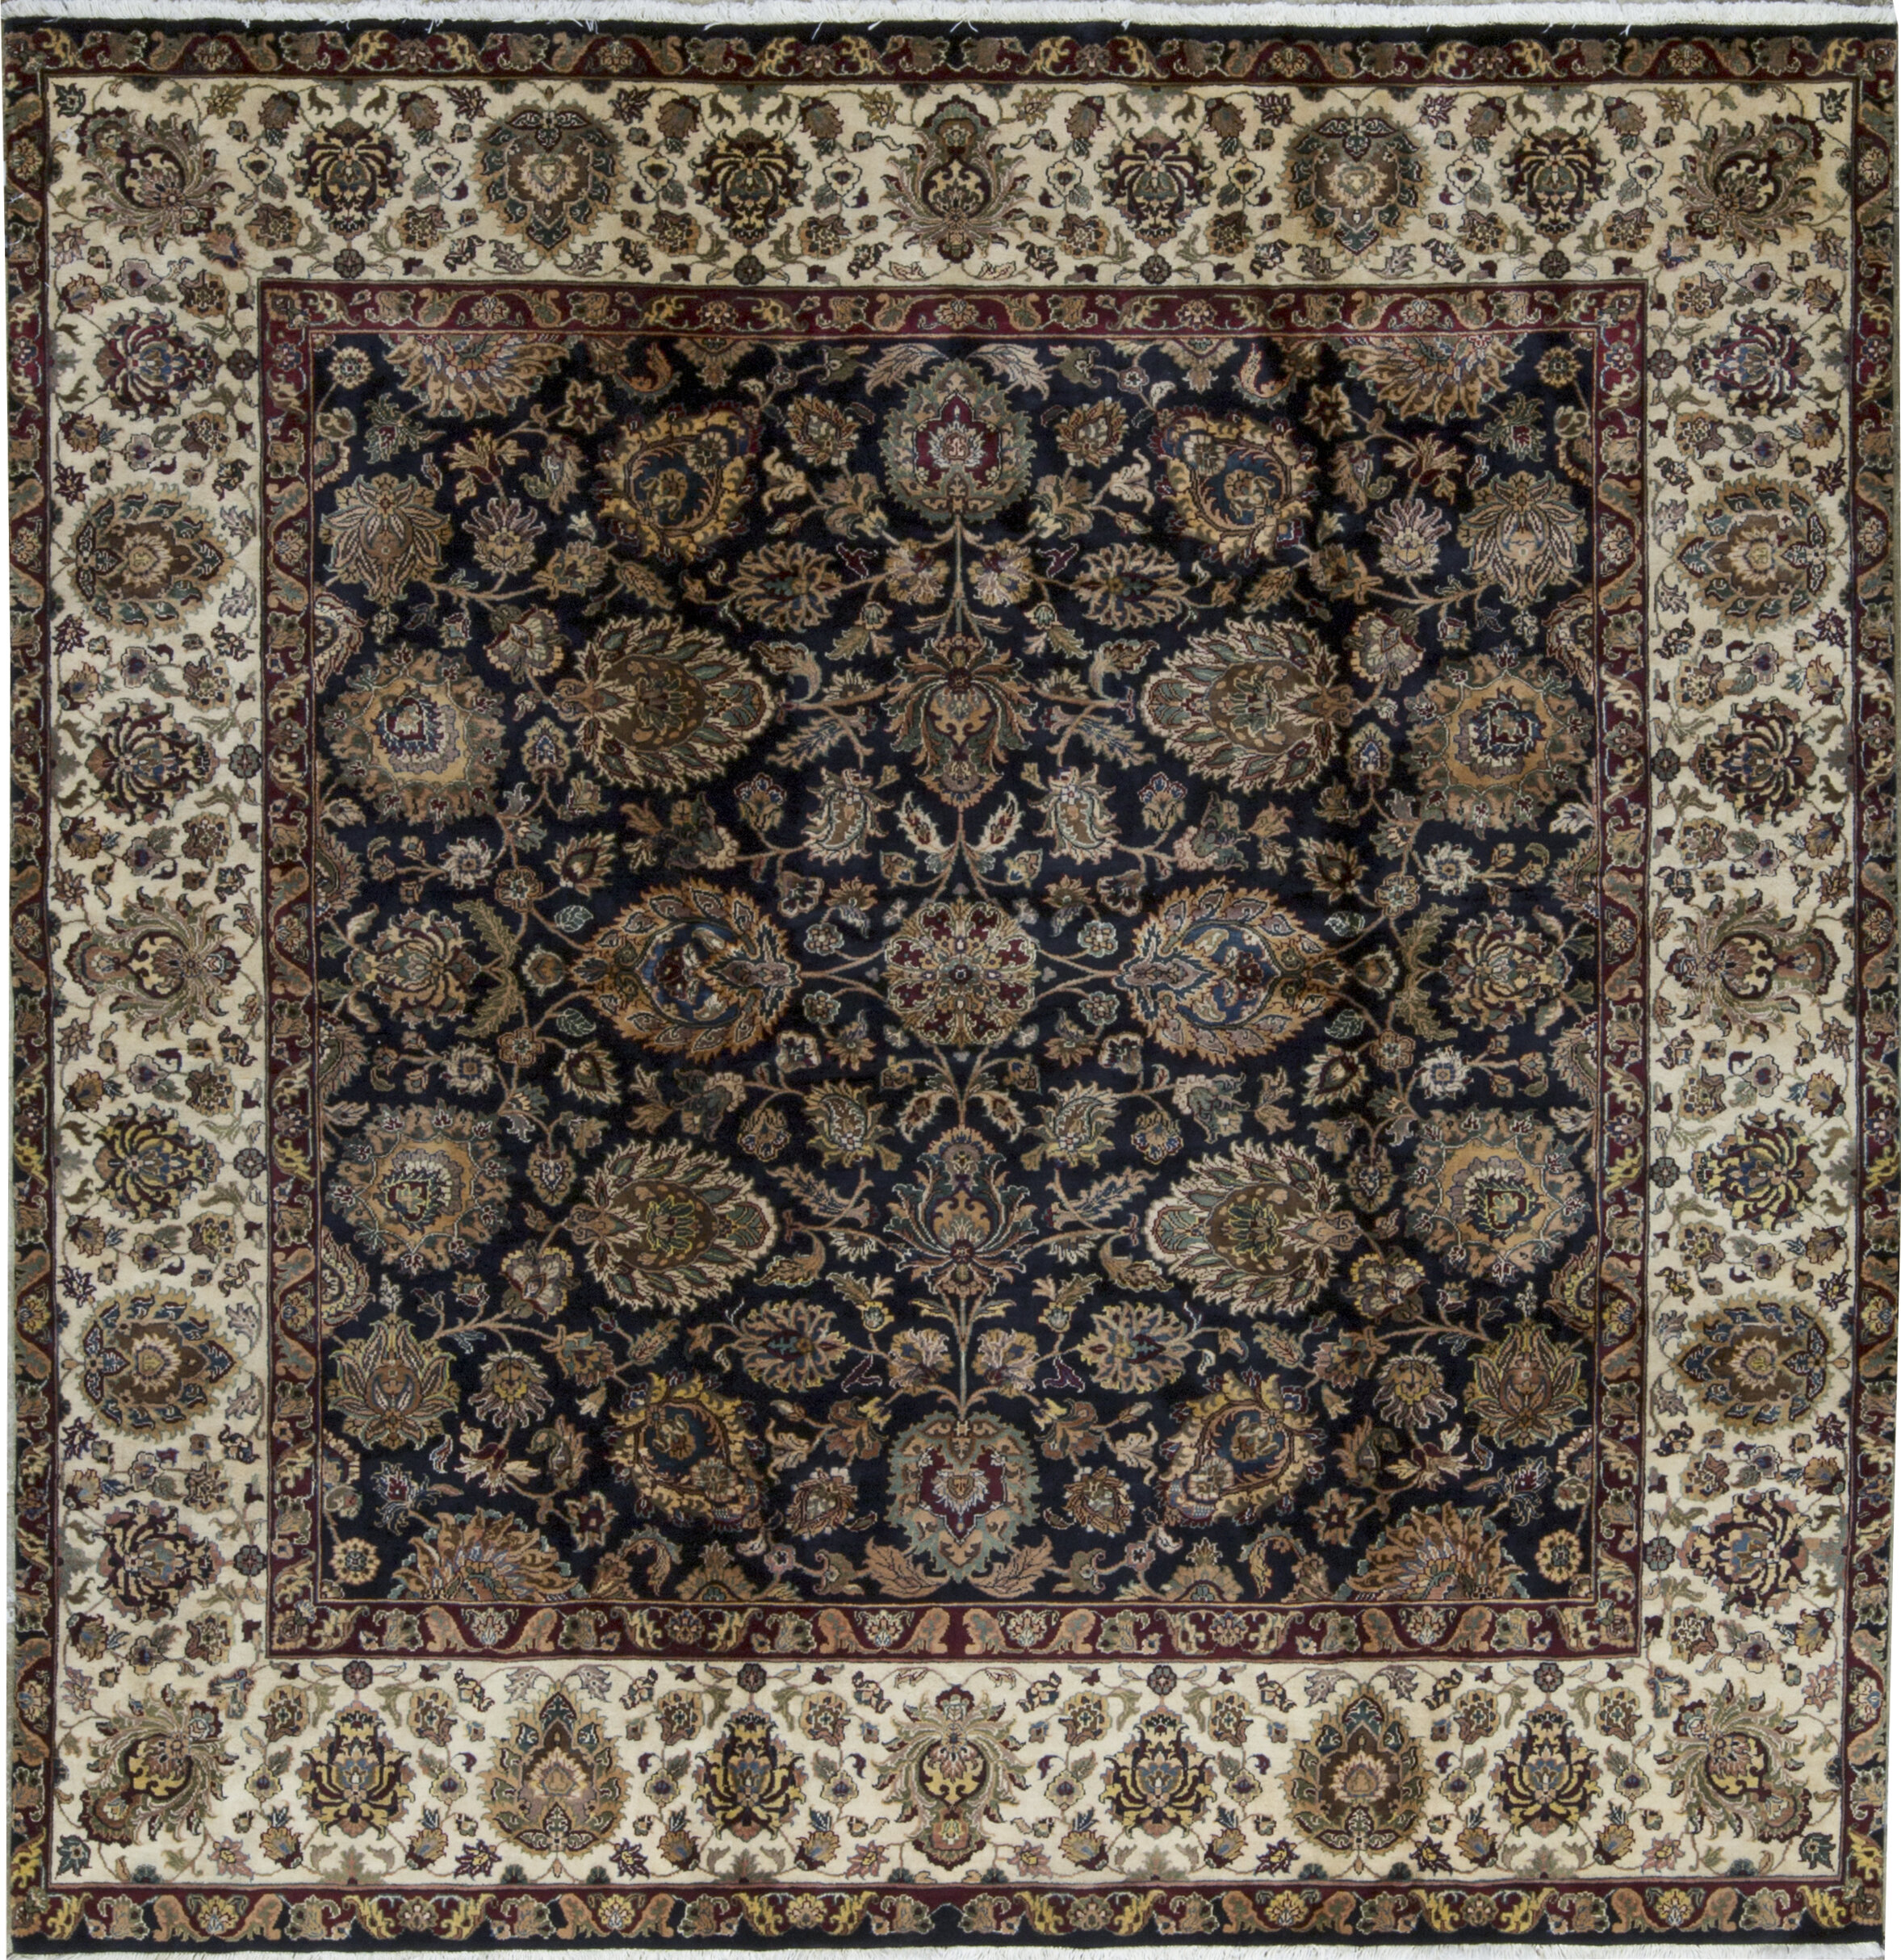 Oriental Hand Knotted Wool Black Cream